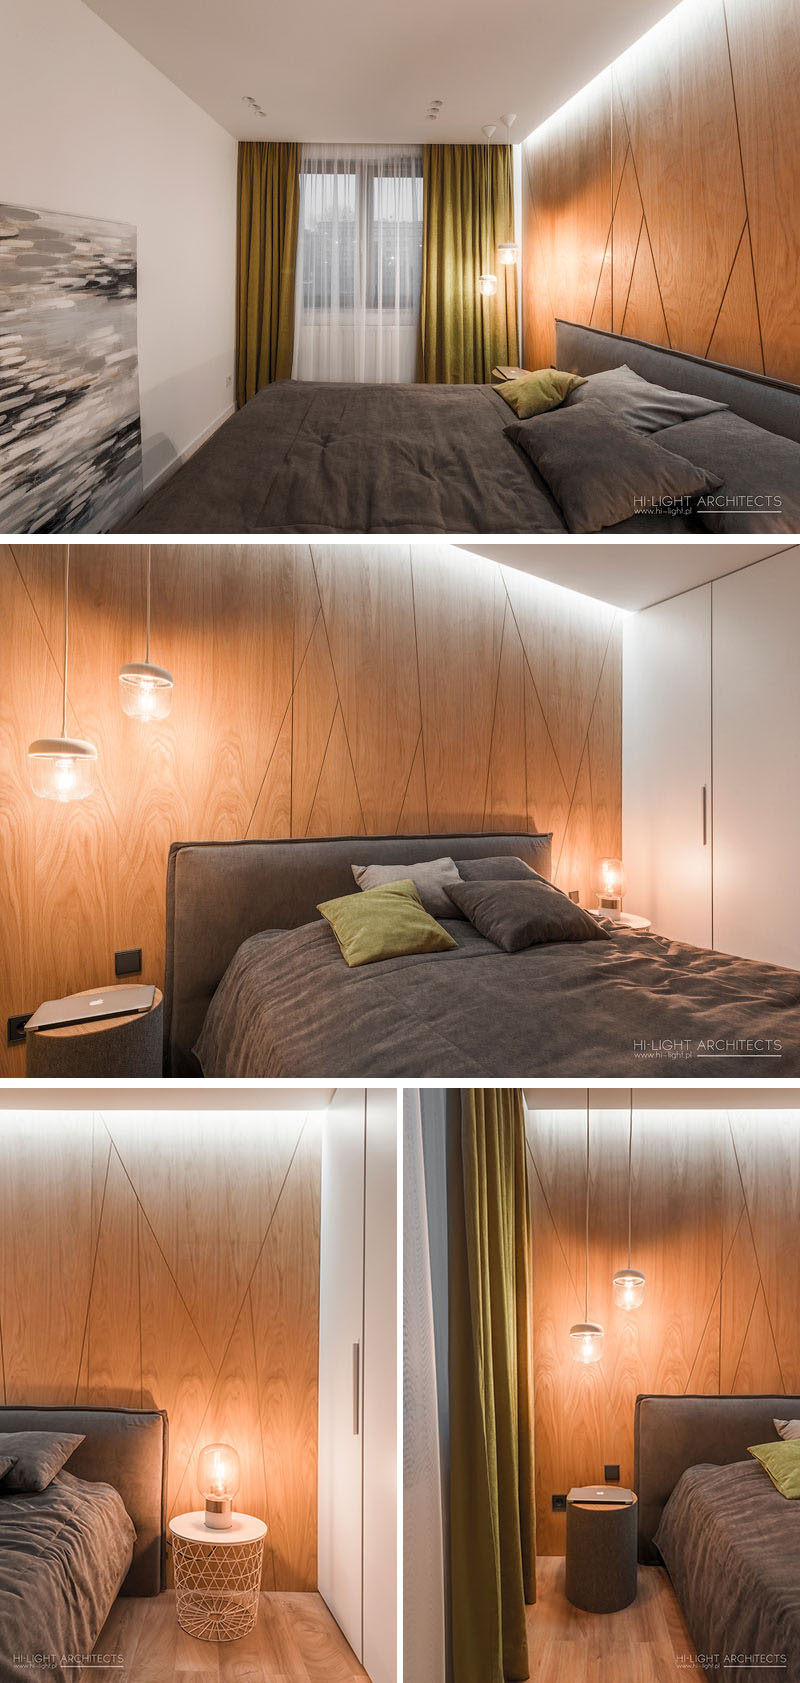 In this modern bedroom there's wood accent wall, with a diagonal pattern, that's highlighted by the hidden lighting in the ceiling. #ModernBedroom #WoodAccentWall